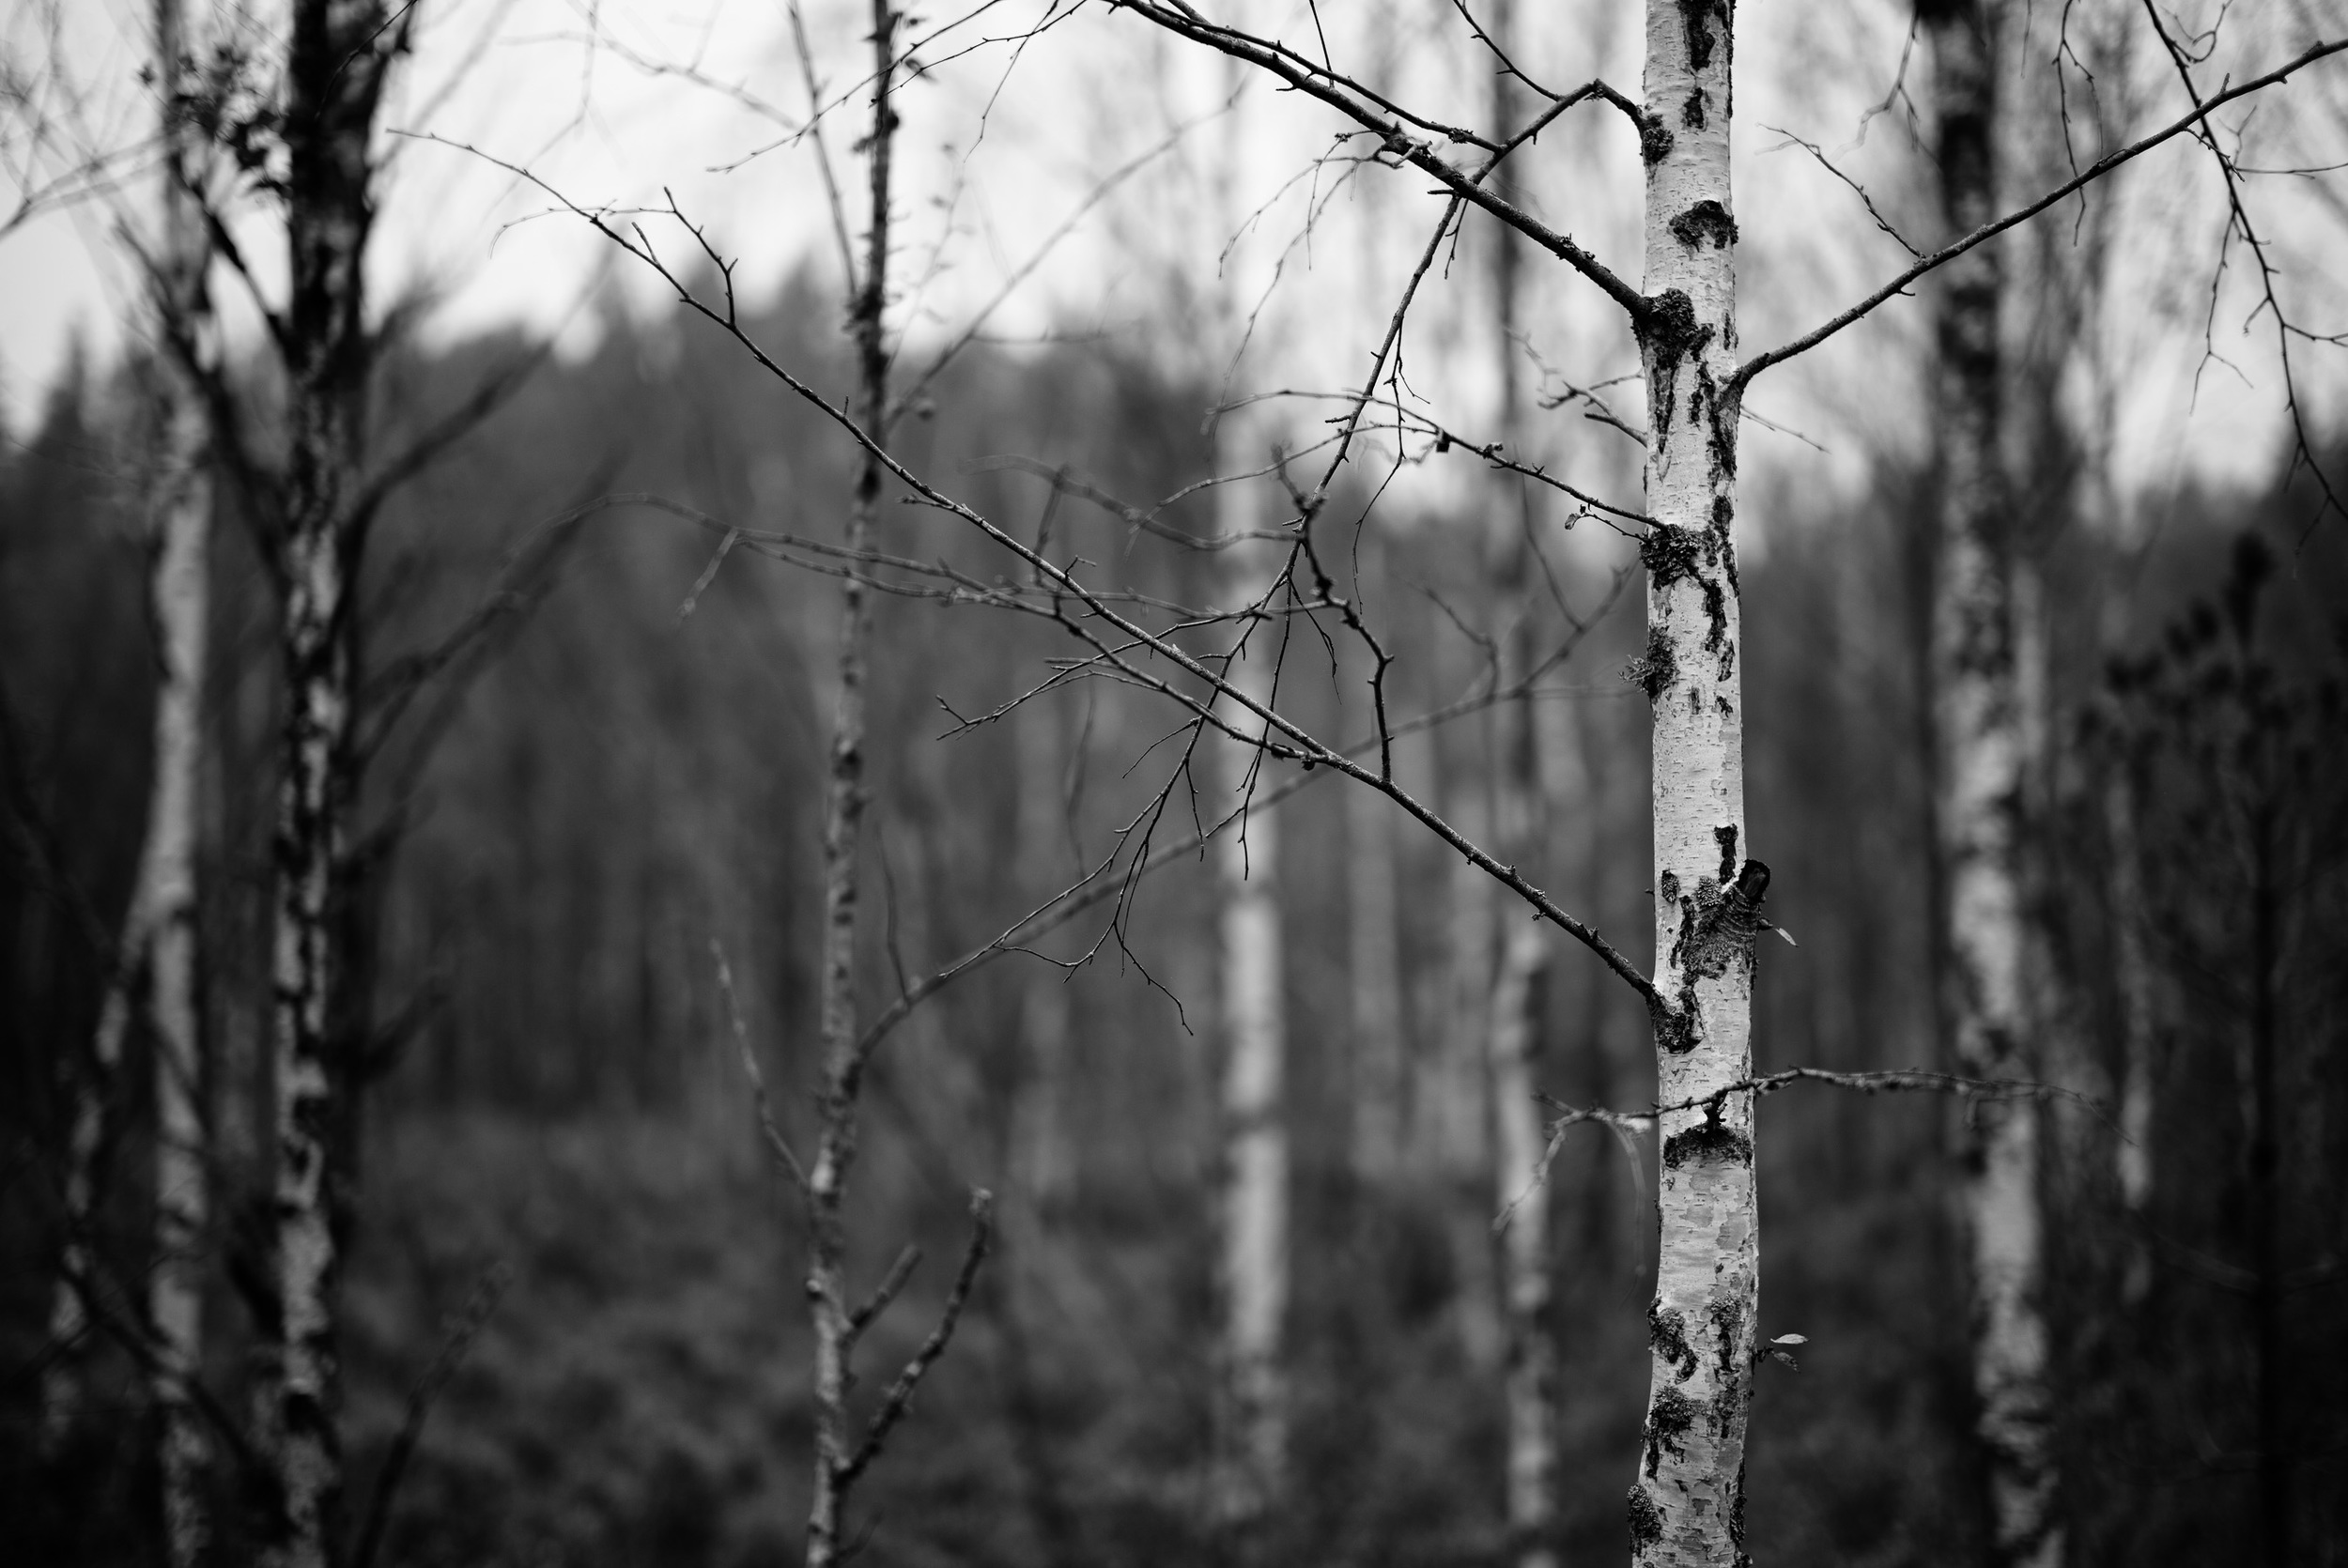 Birch trees at Tyresta National Park - I still prefer black and white images, and M files convert beautifully!